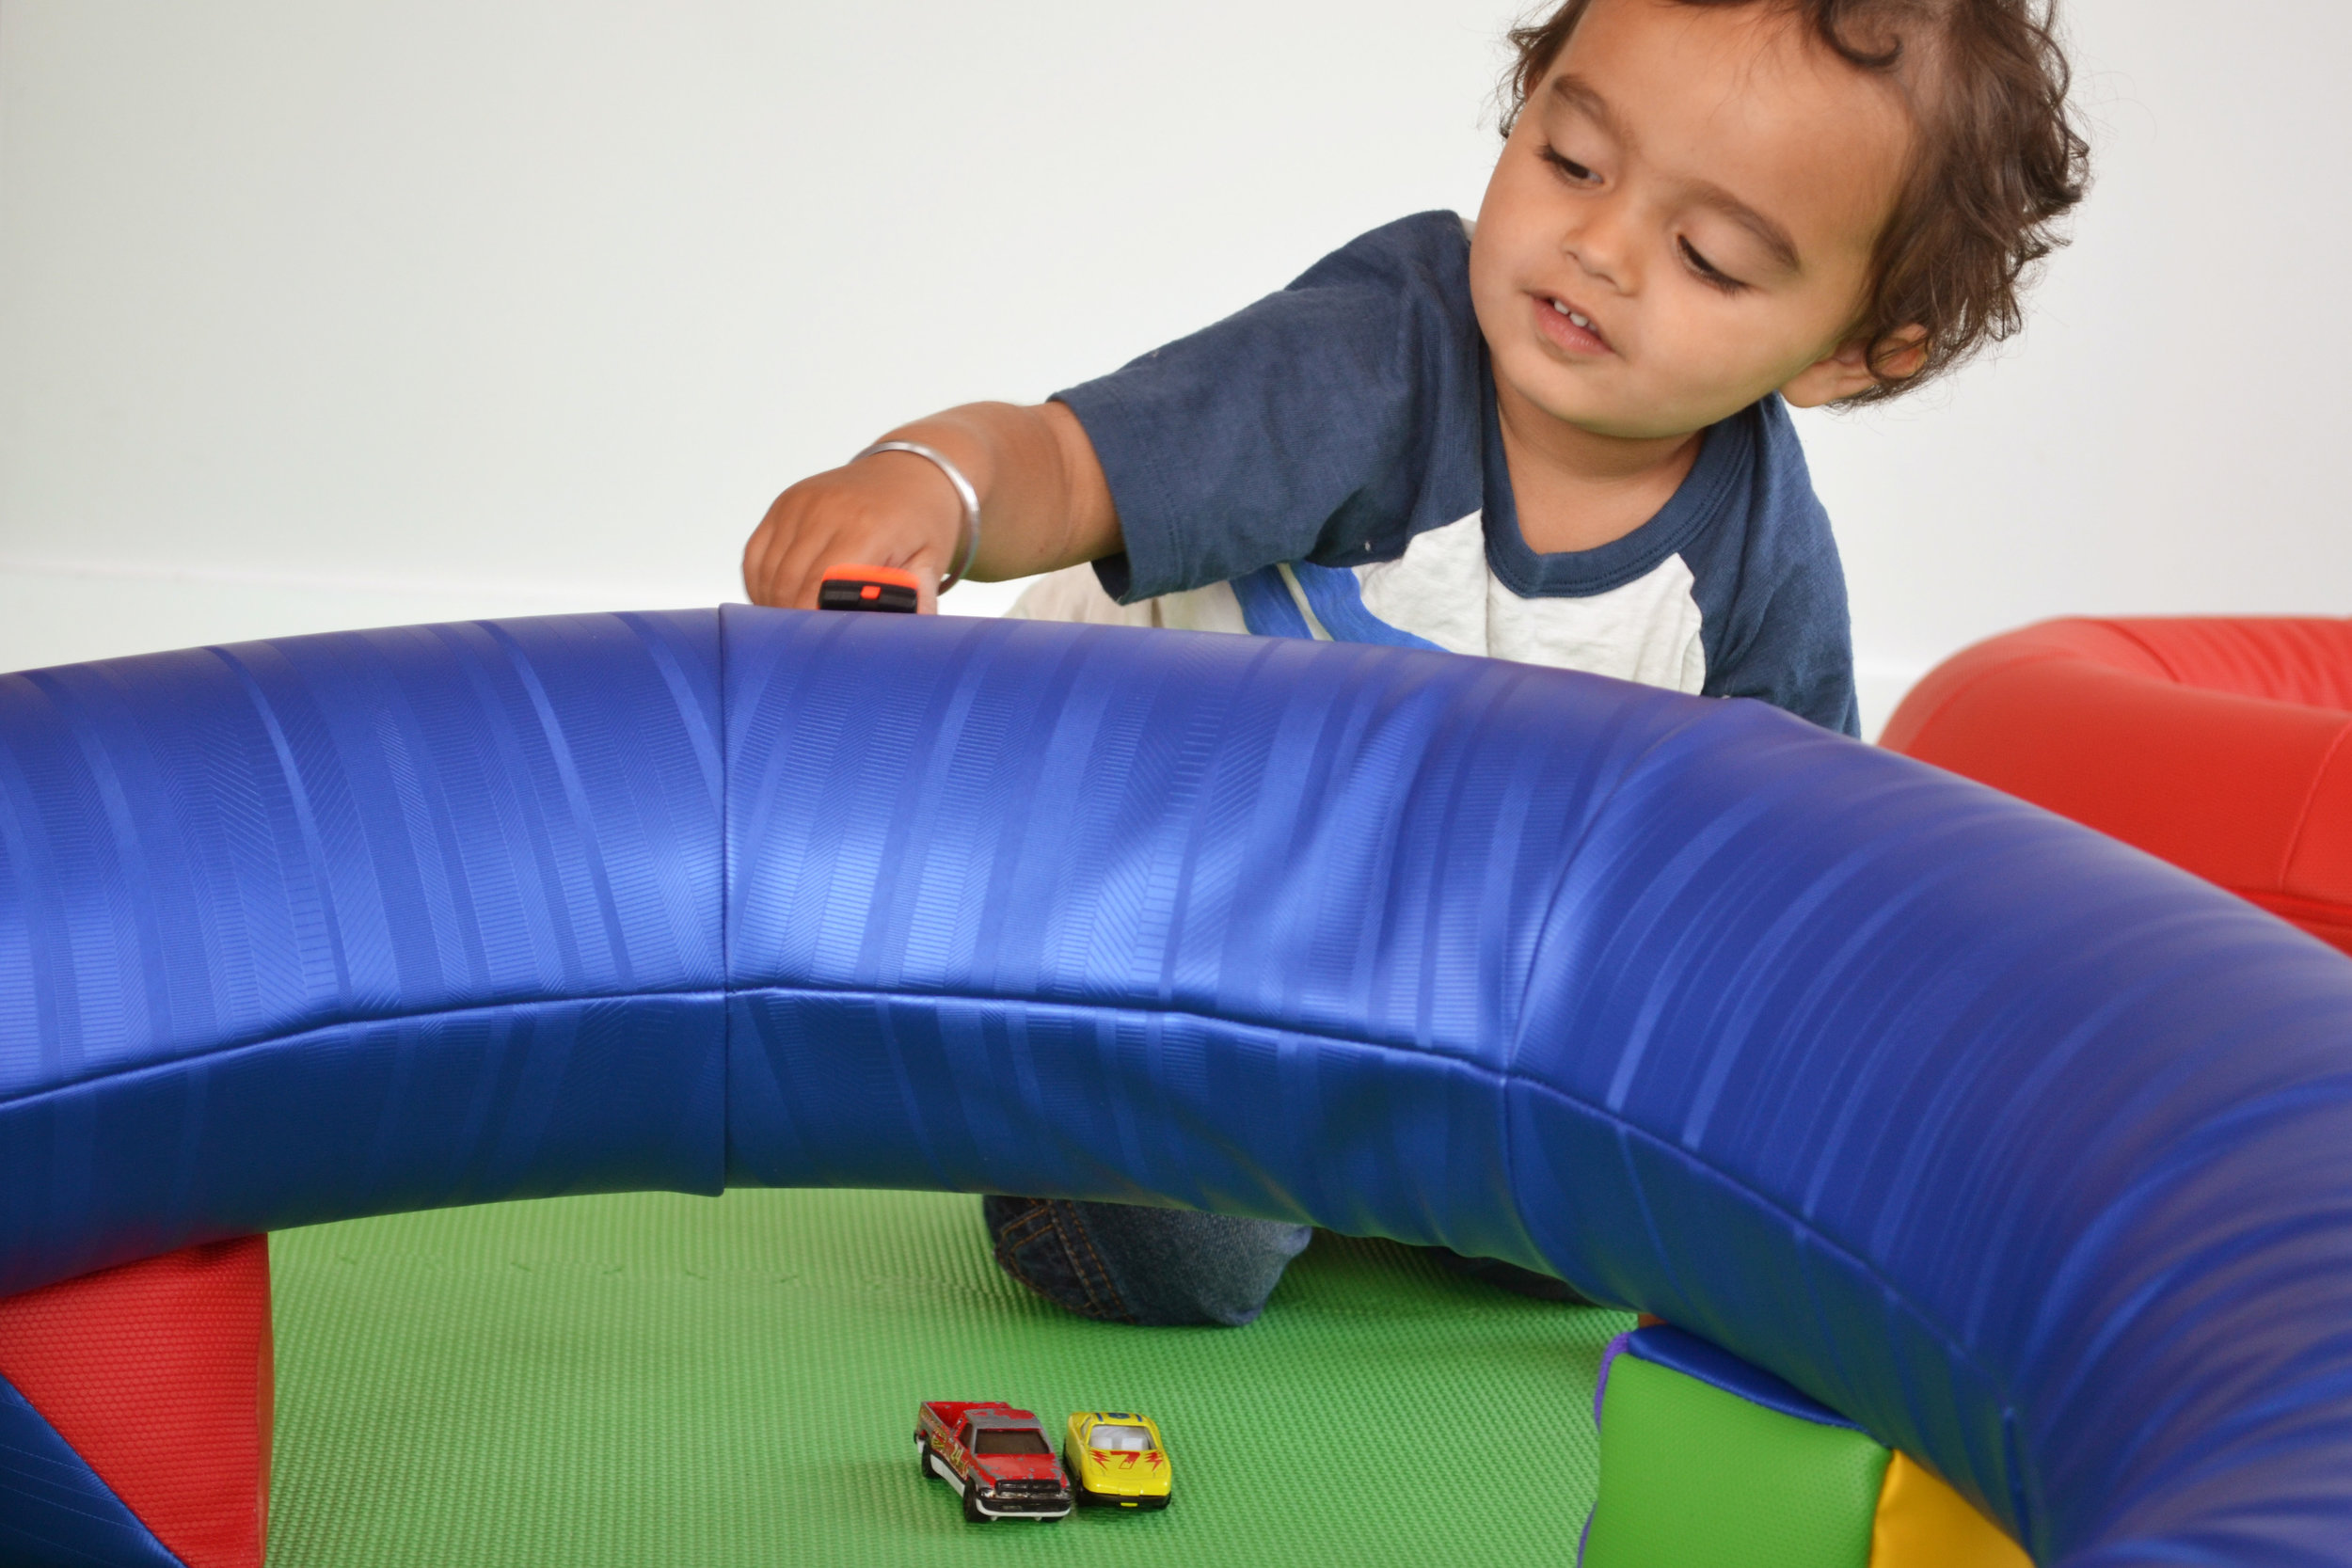 Race Track! (Incorporate other toys)